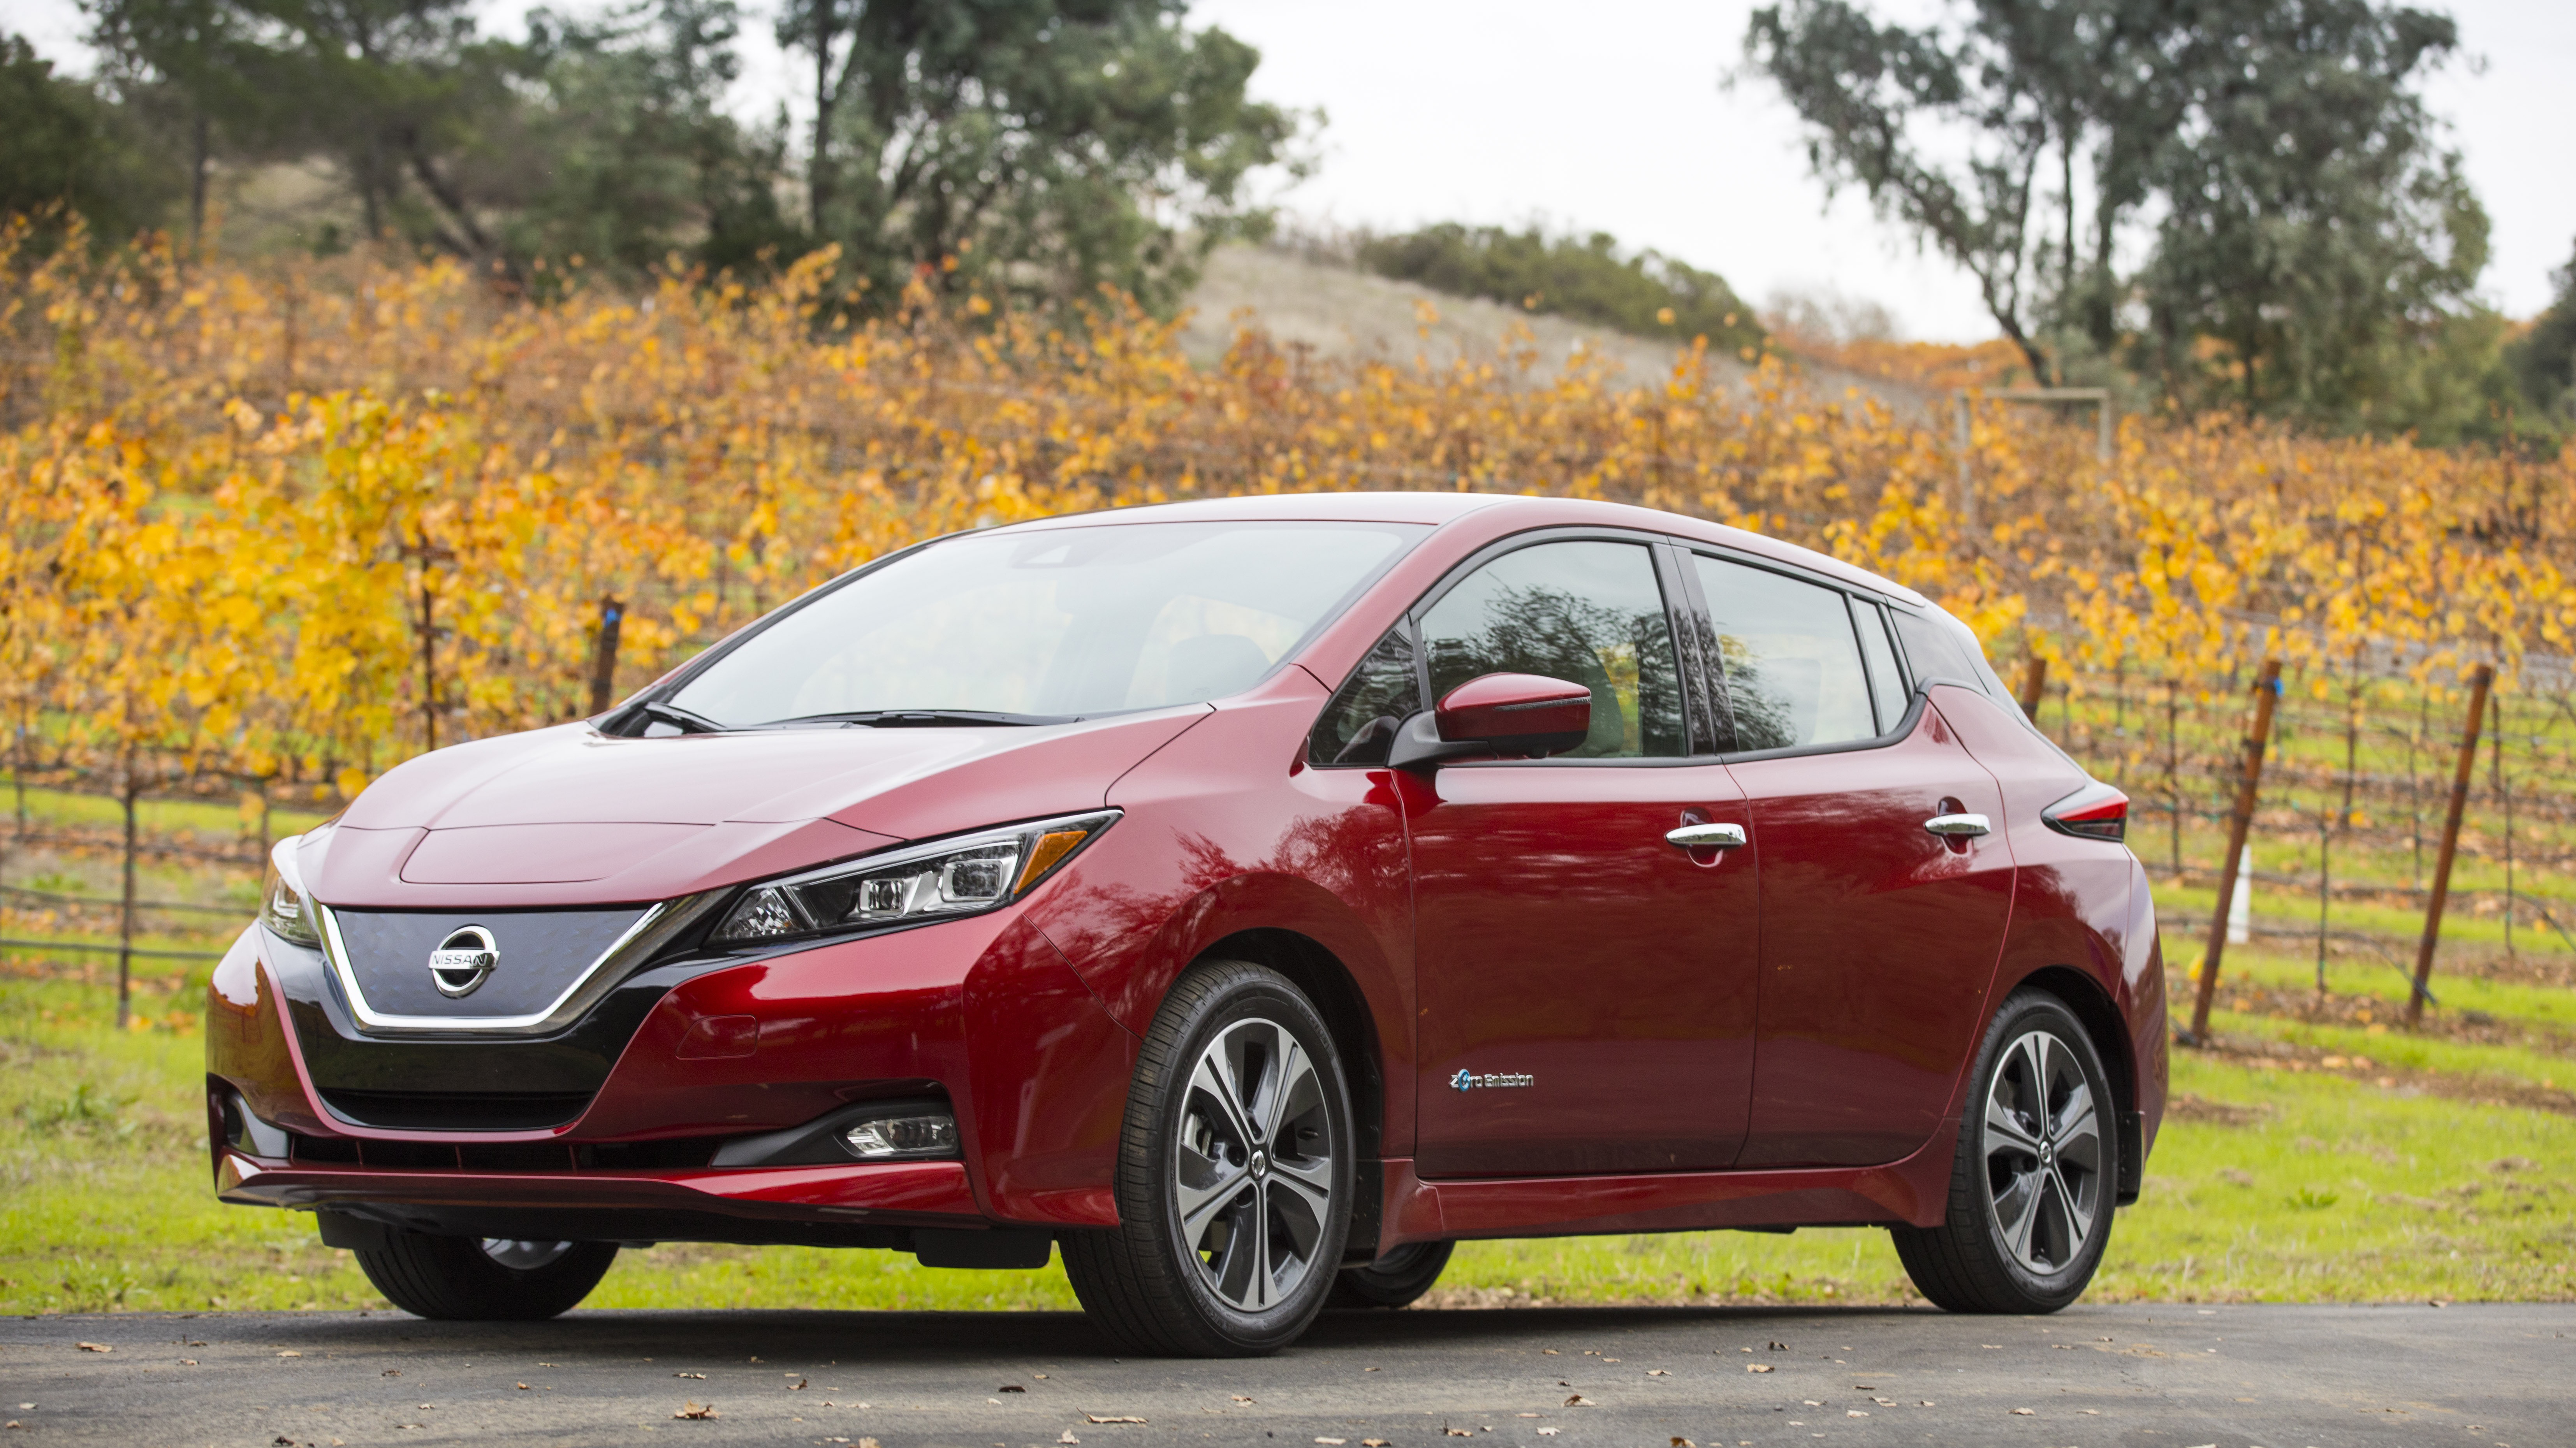 2018 Nissan Leaf: First Drive Review - The Green Car Guy